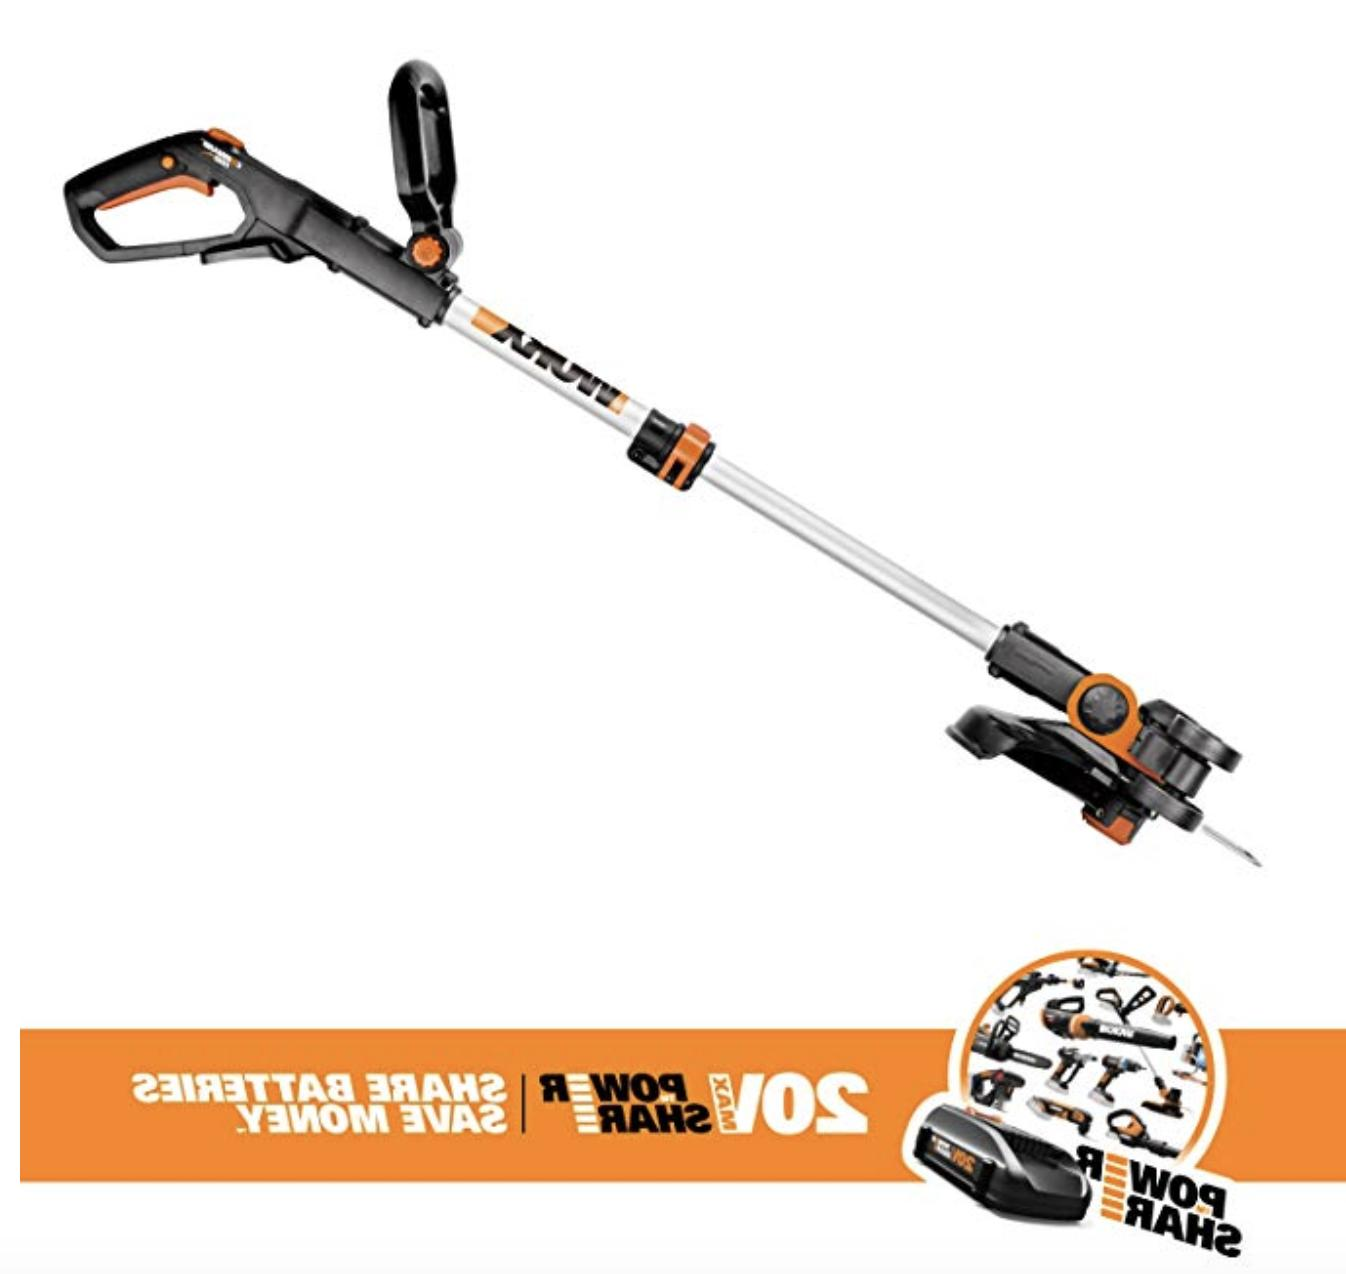 20V Weed Eater Cordless Grass Yard Tool Battery Powered